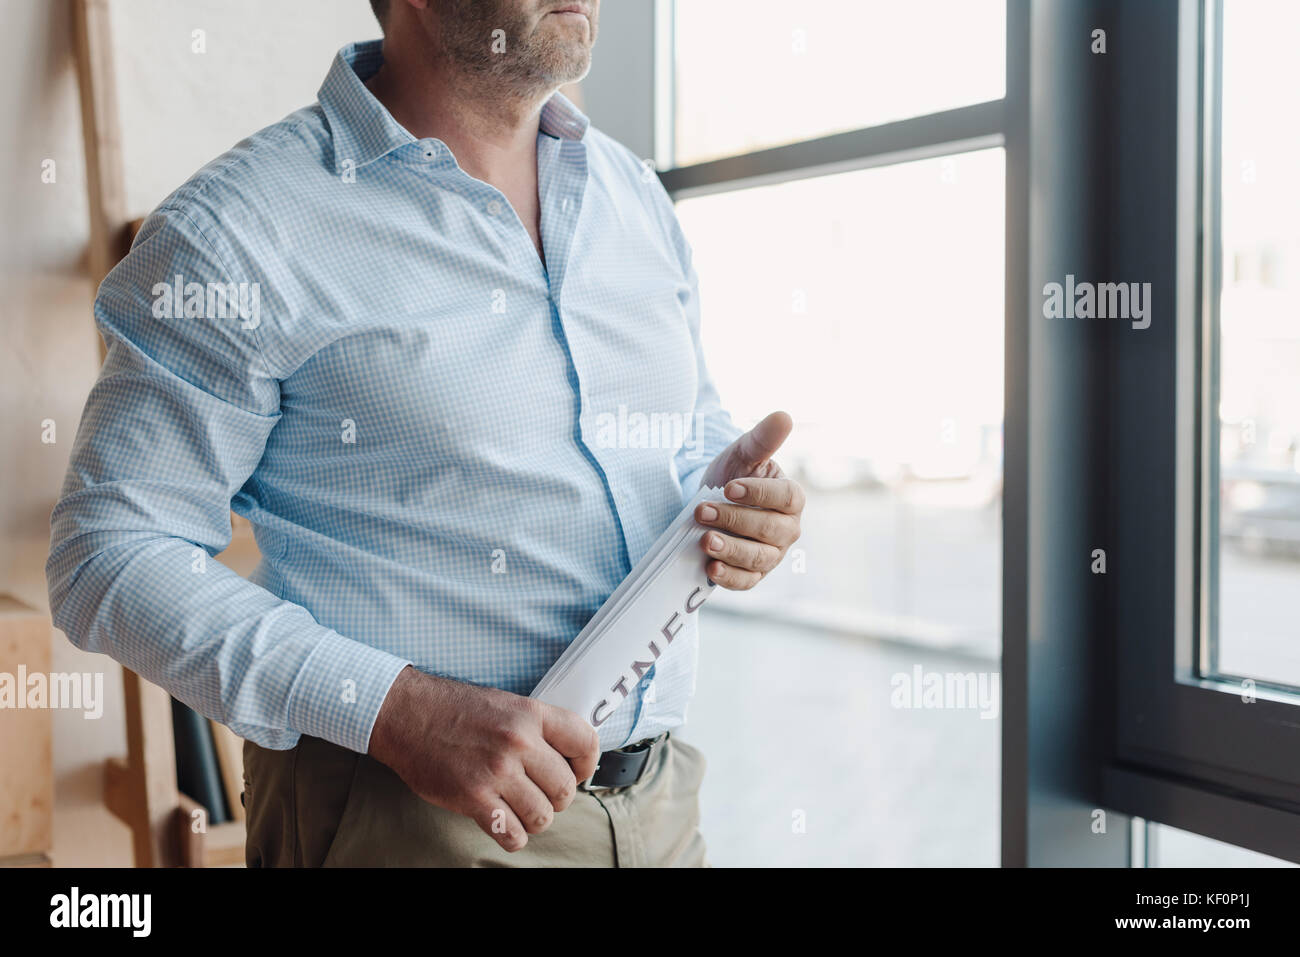 Roll Up Newspaper Stock Photos & Roll Up Newspaper Stock ...